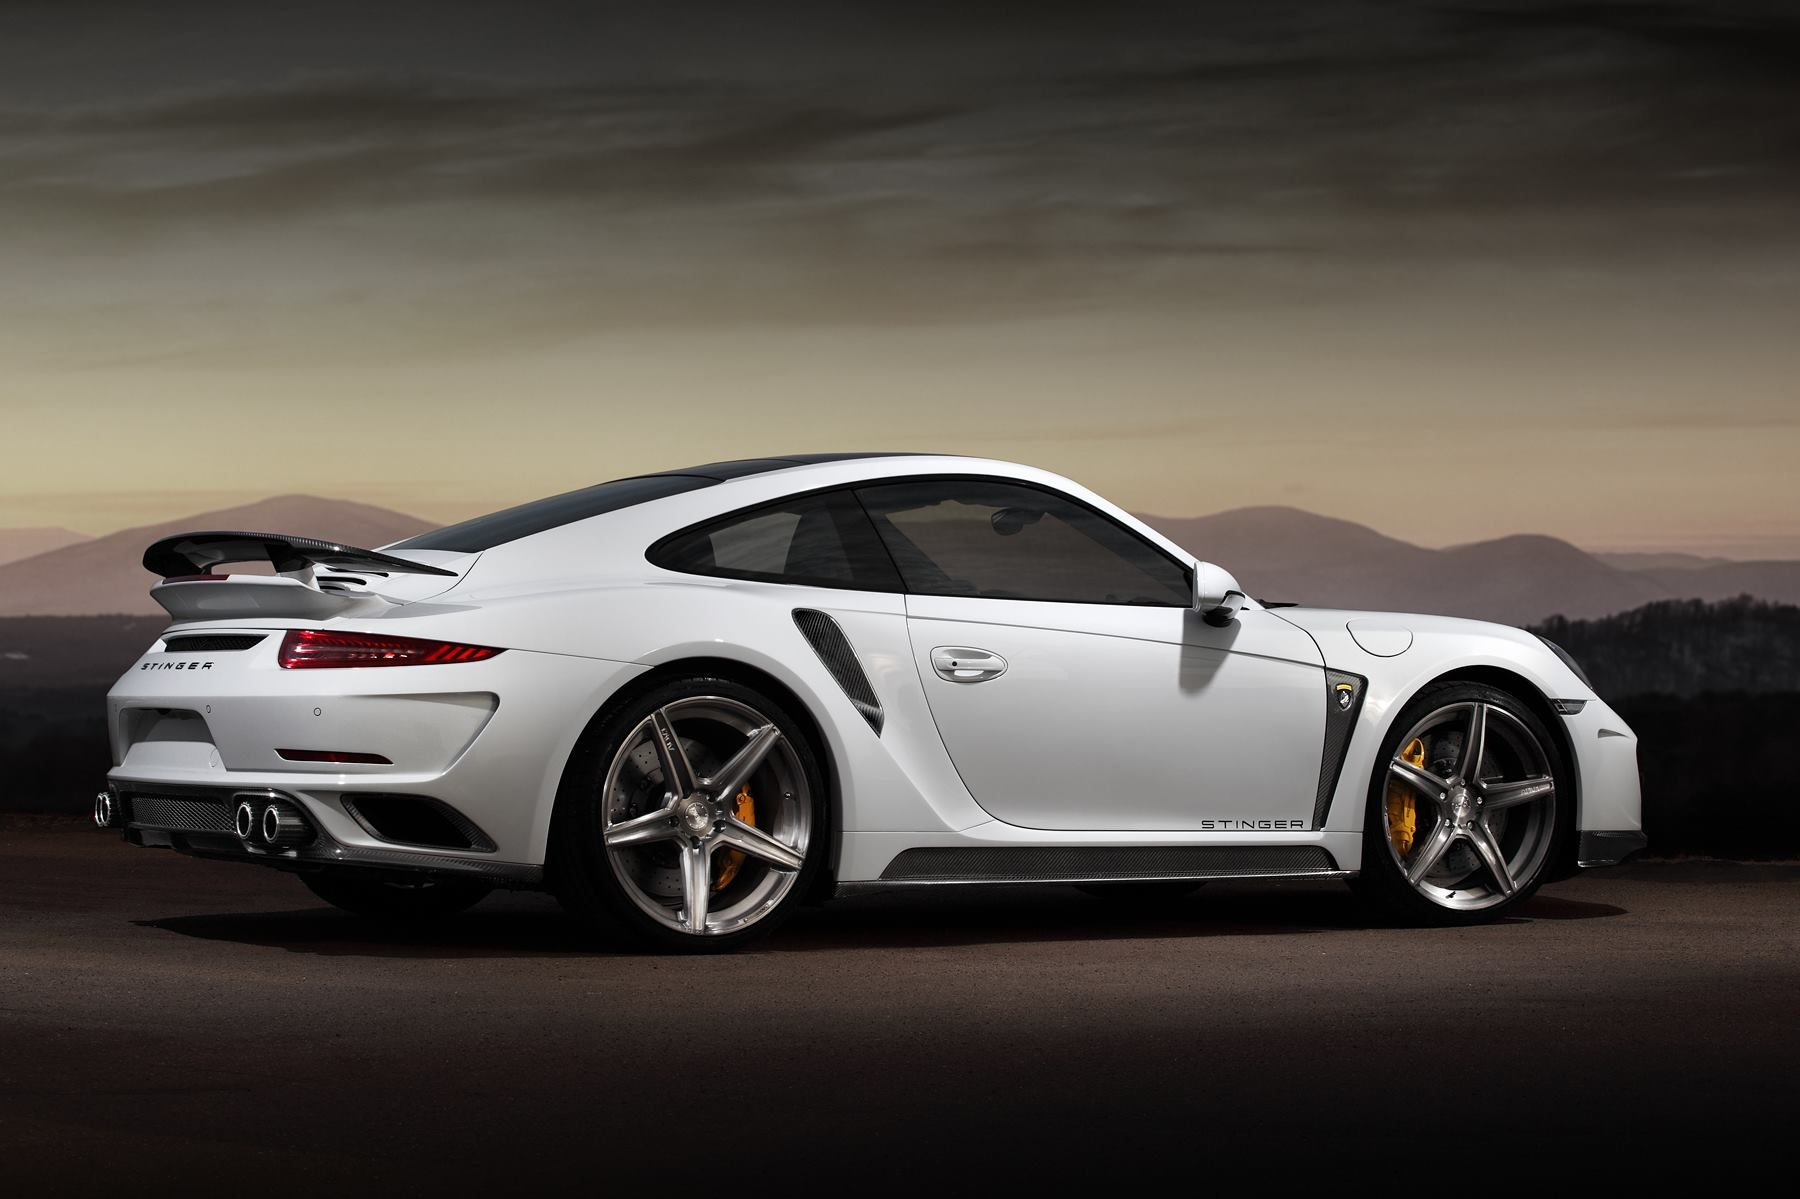 27c36b2b31dbe8a219f139b359f47bfd Stunning Porsche 911 Gt2 Body Kit Cars Trend